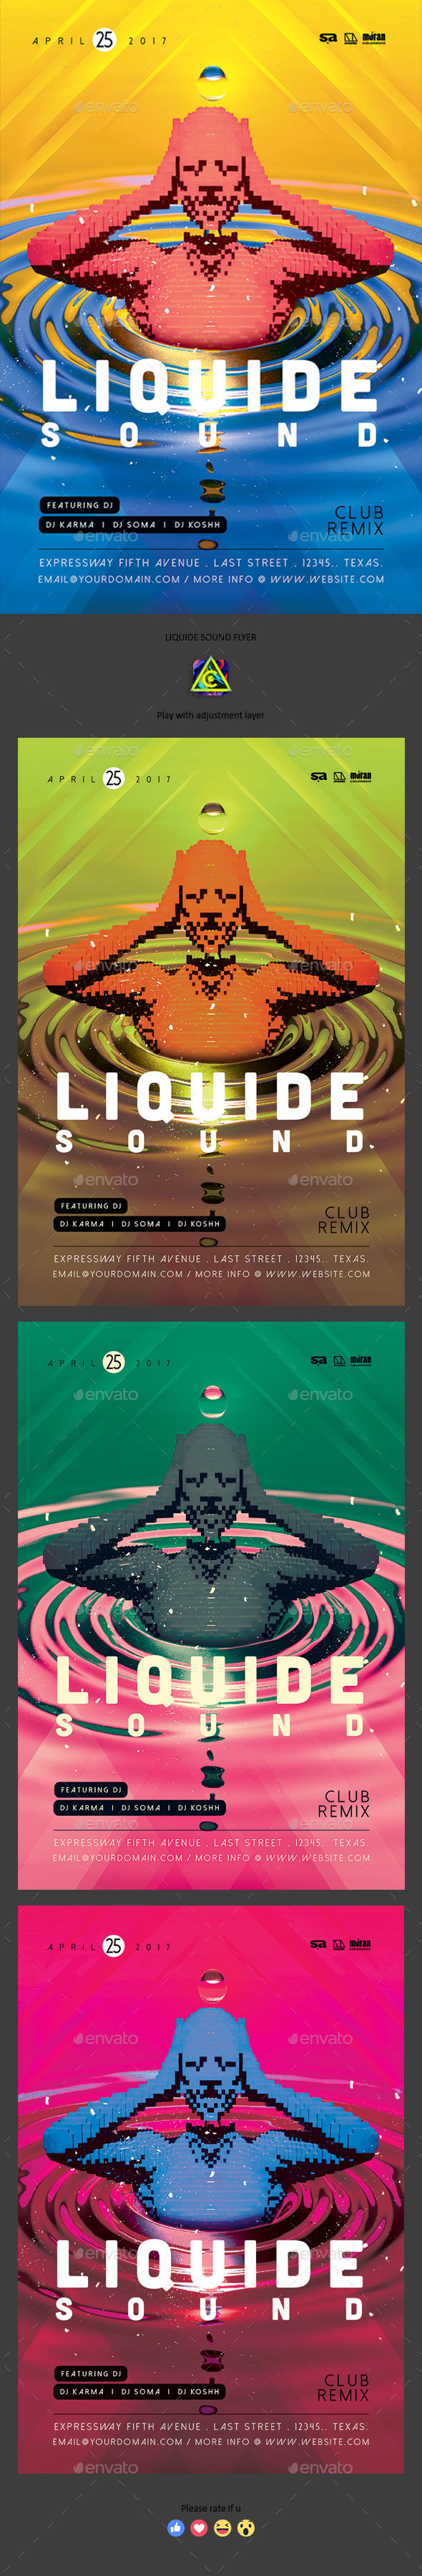 Liquide Sound Flyer - Clubs & Parties Events